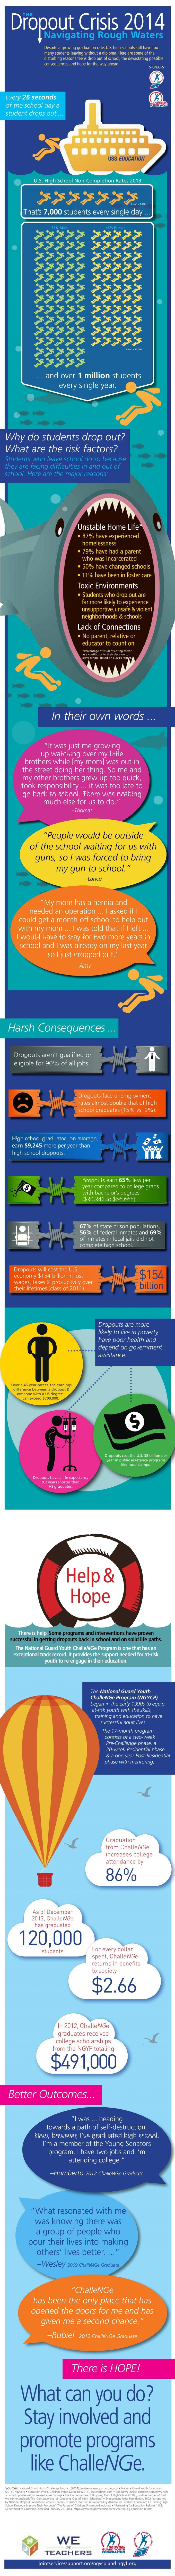 2014 Dropout Crisis by the Numbers Infographic